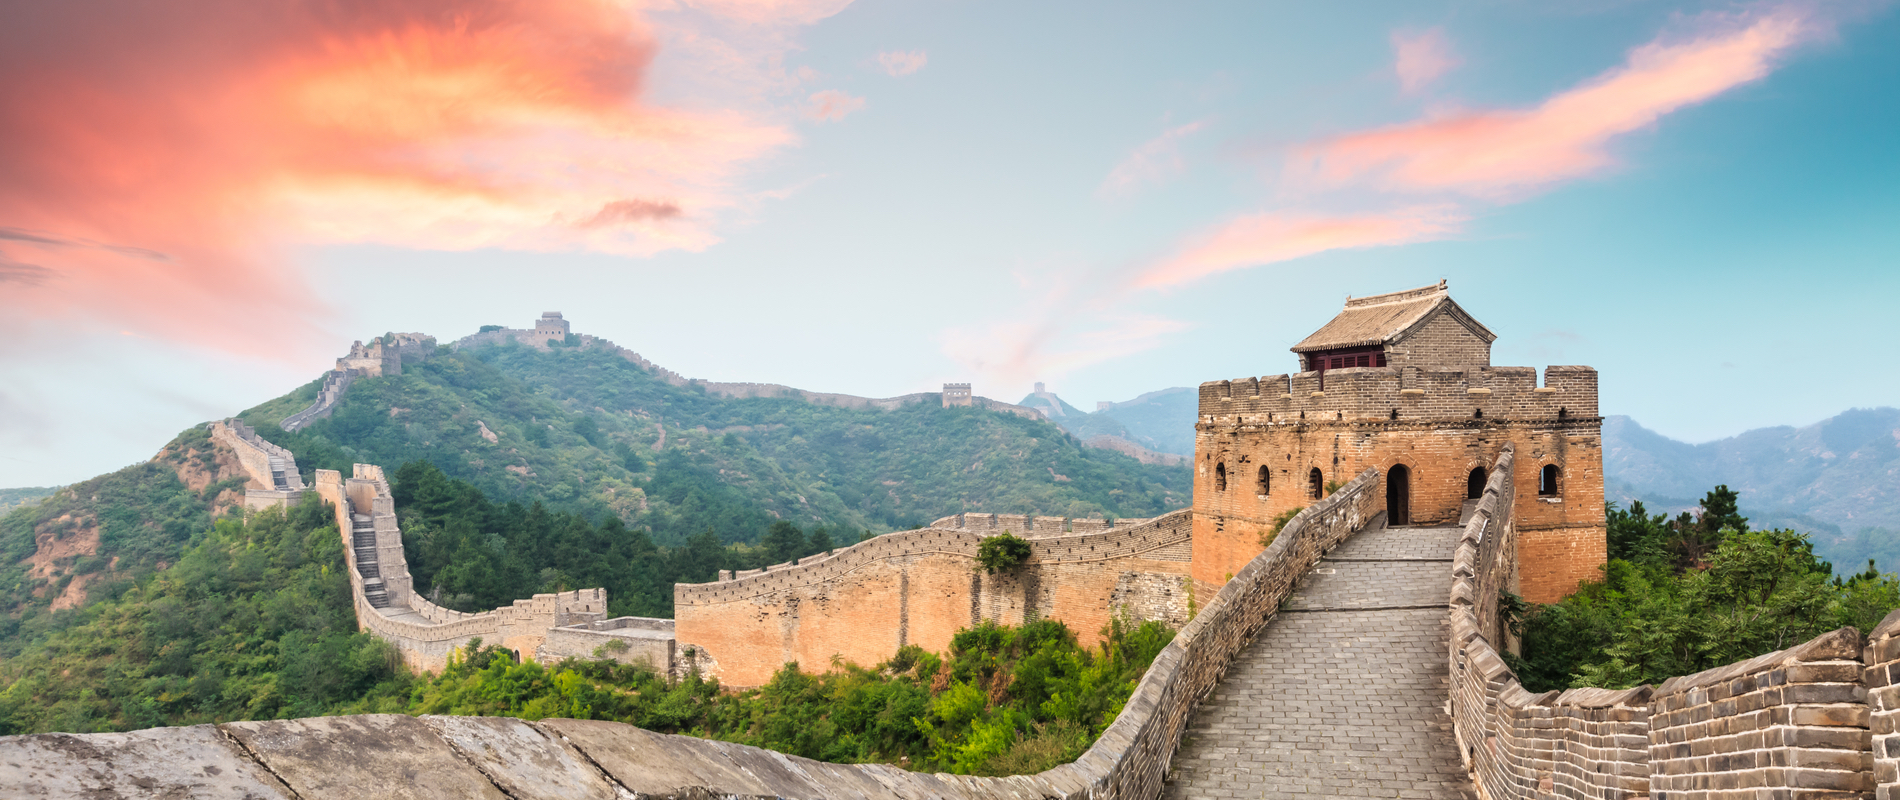 Beautiful view of the Great Wall of China amidst blue and pastel skies